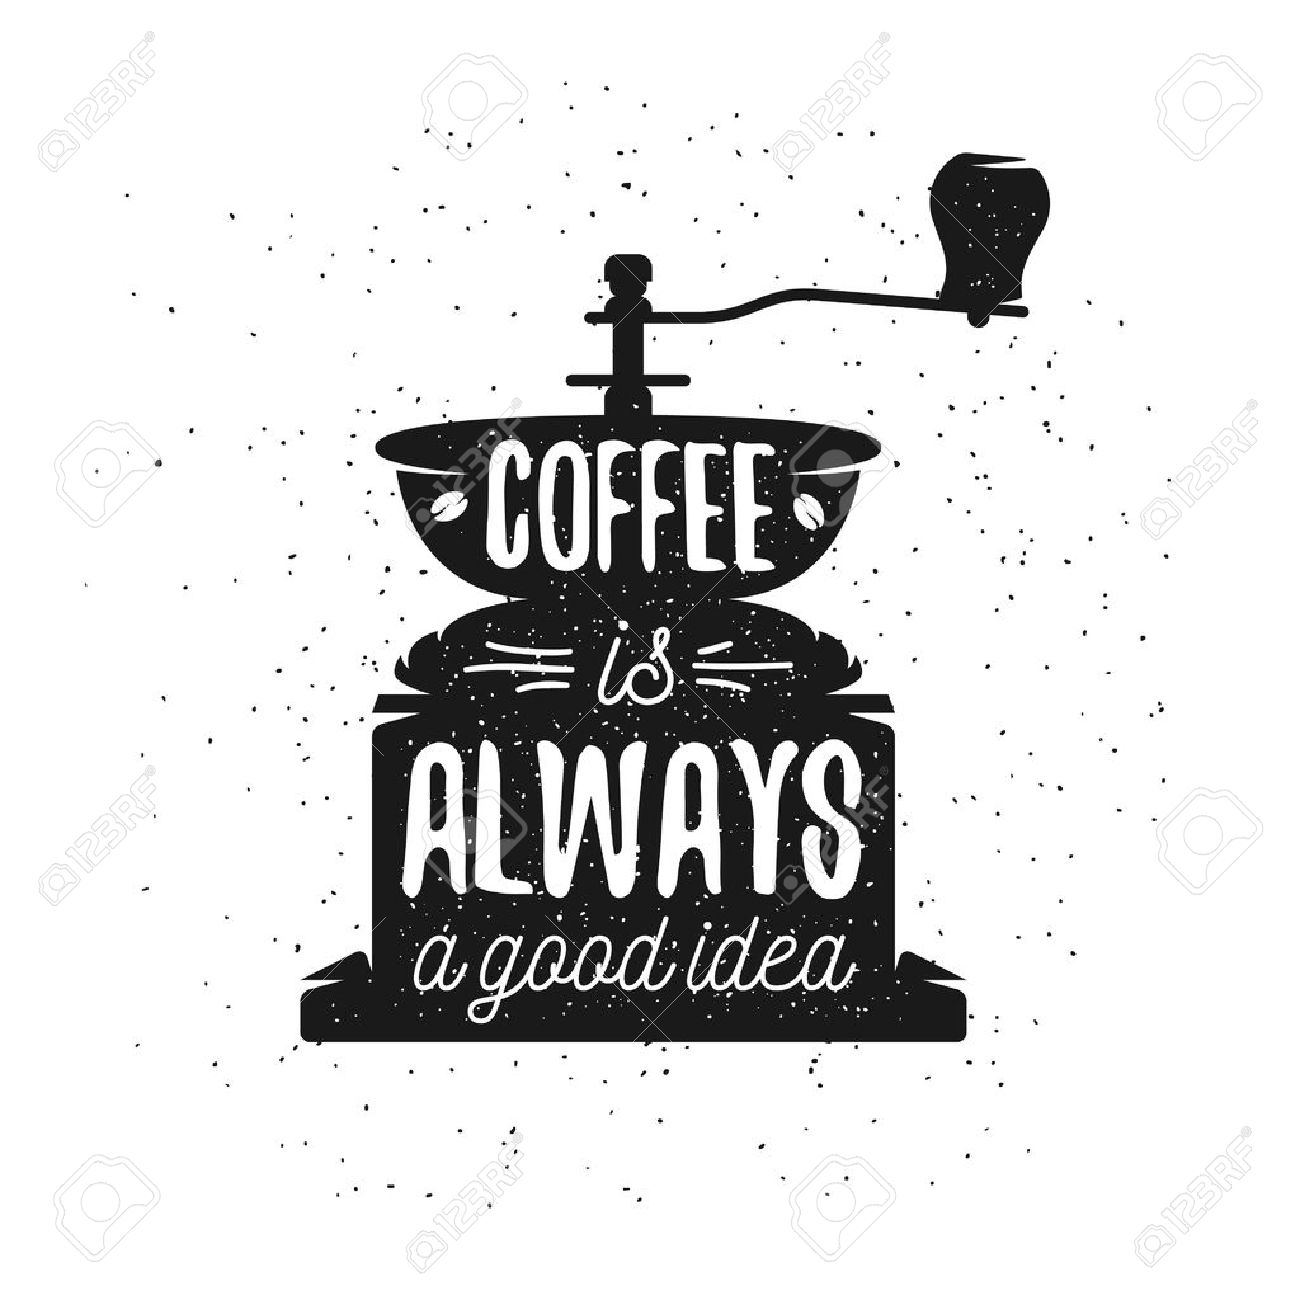 Free Quote Maker Hand Drawn Typography Coffee Postergreeting Card Or Print